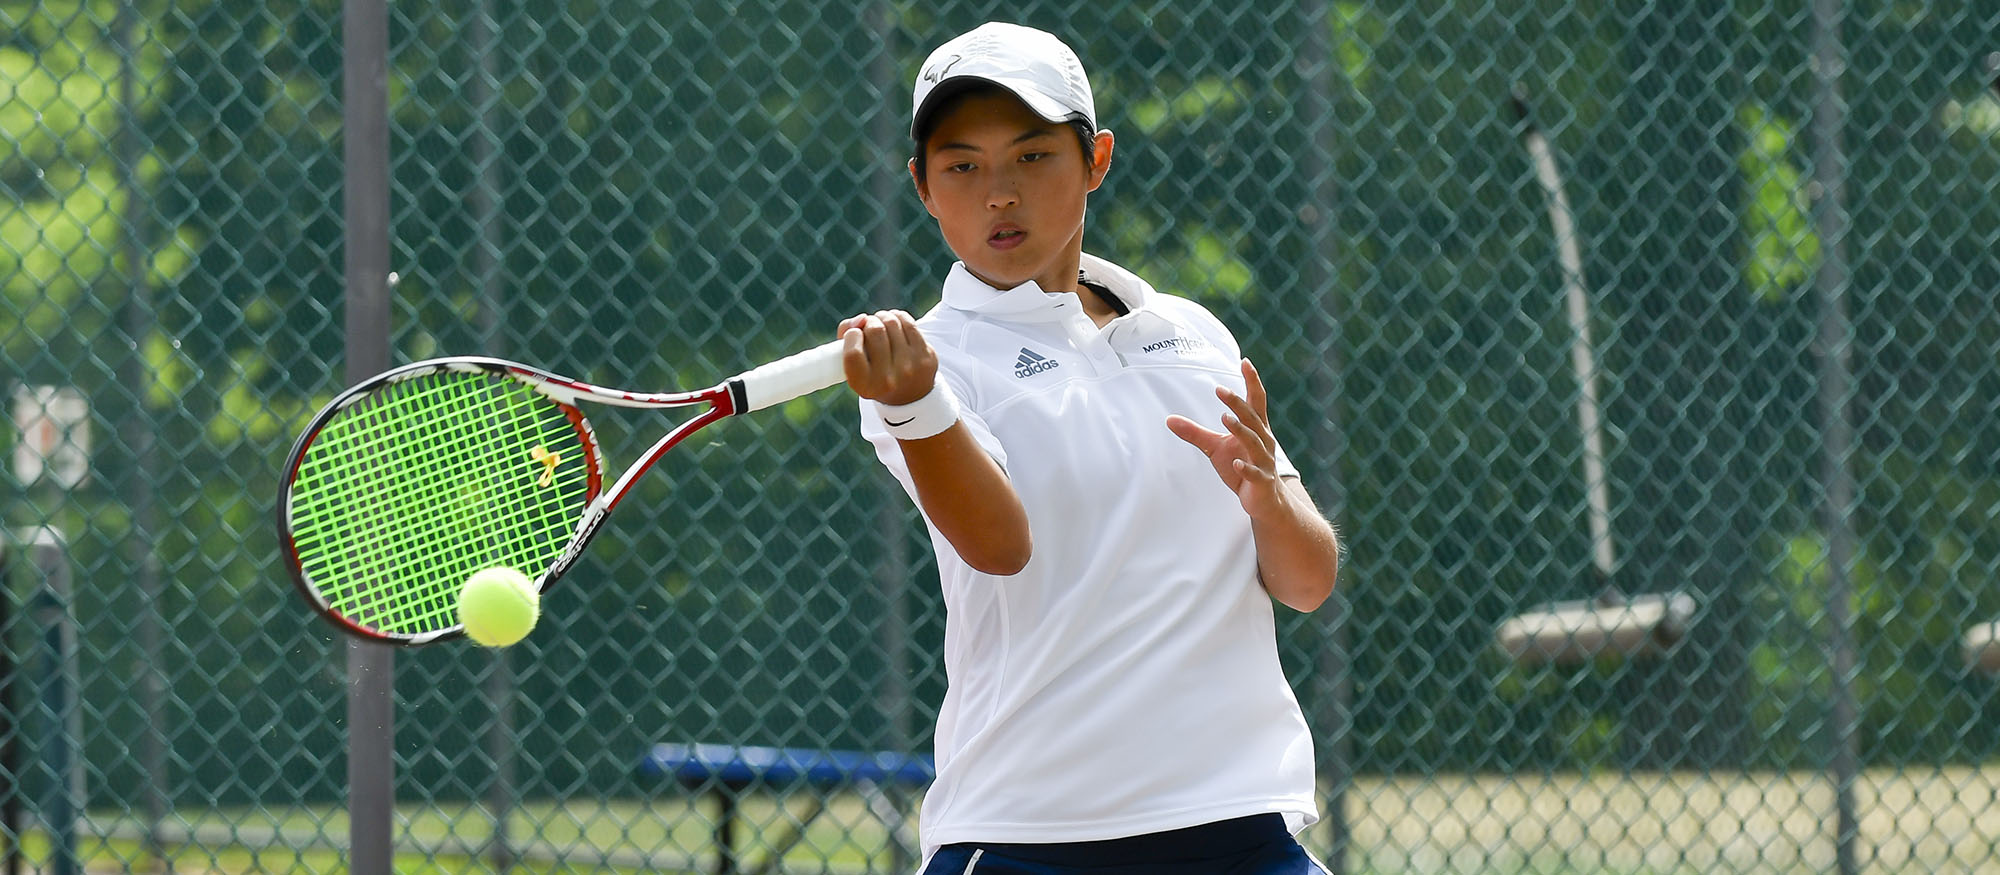 Action photo of Lyons tennis player Ching-Ching Huang